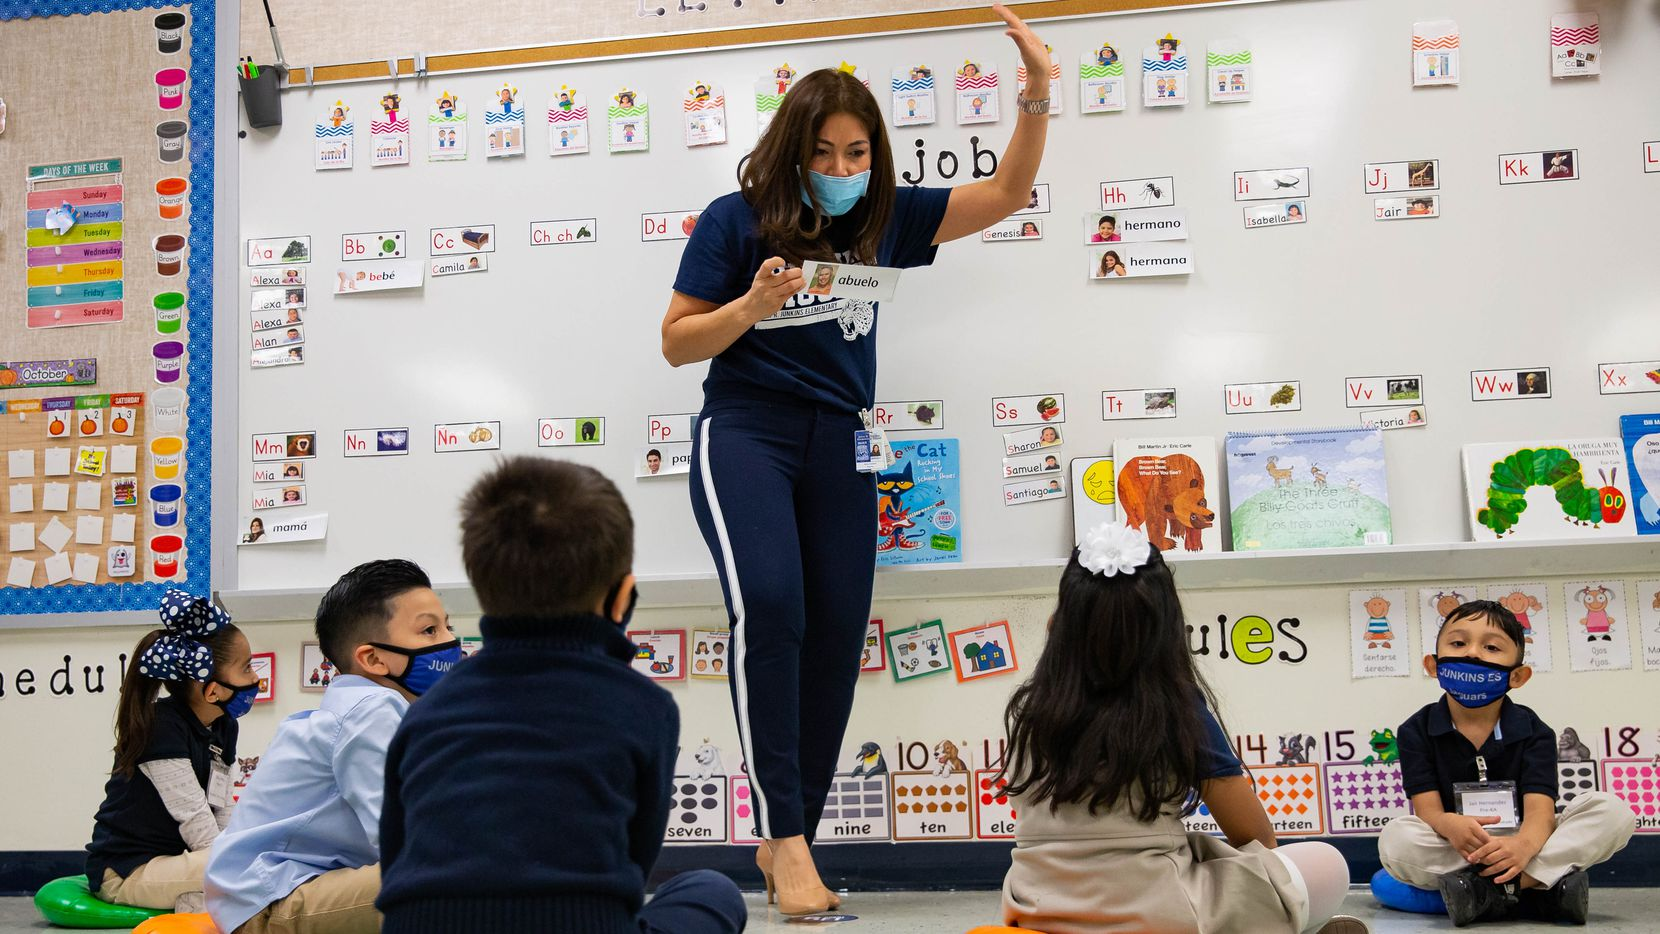 Texas school boards are deciding whether to maintain, modify or eliminate their mask requirements.